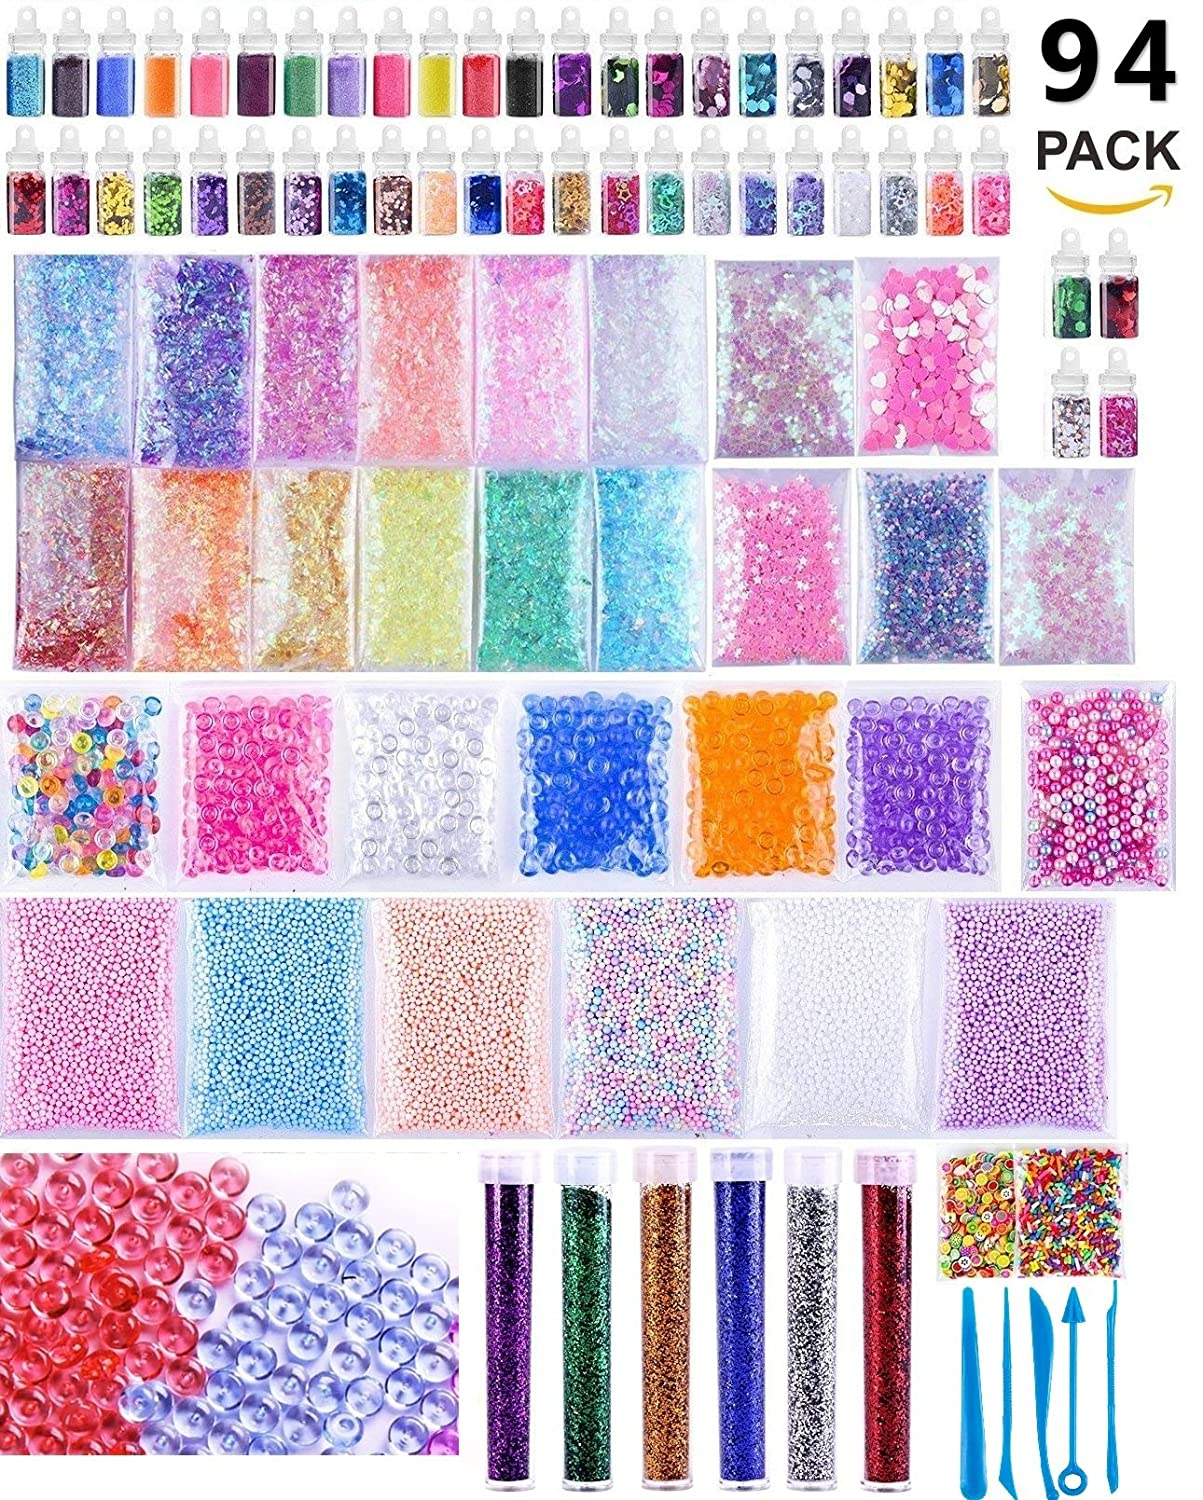 TMO 94 Pack Slime with Charms DIY Slime Supplies Kit Slime Coloring Making Kit Craft Homemade Slime include Fishbowl beads,Foam Balls,Fruit Flower Animal Slices,Pearls and Glitter Jars TeeMocom 4336812288